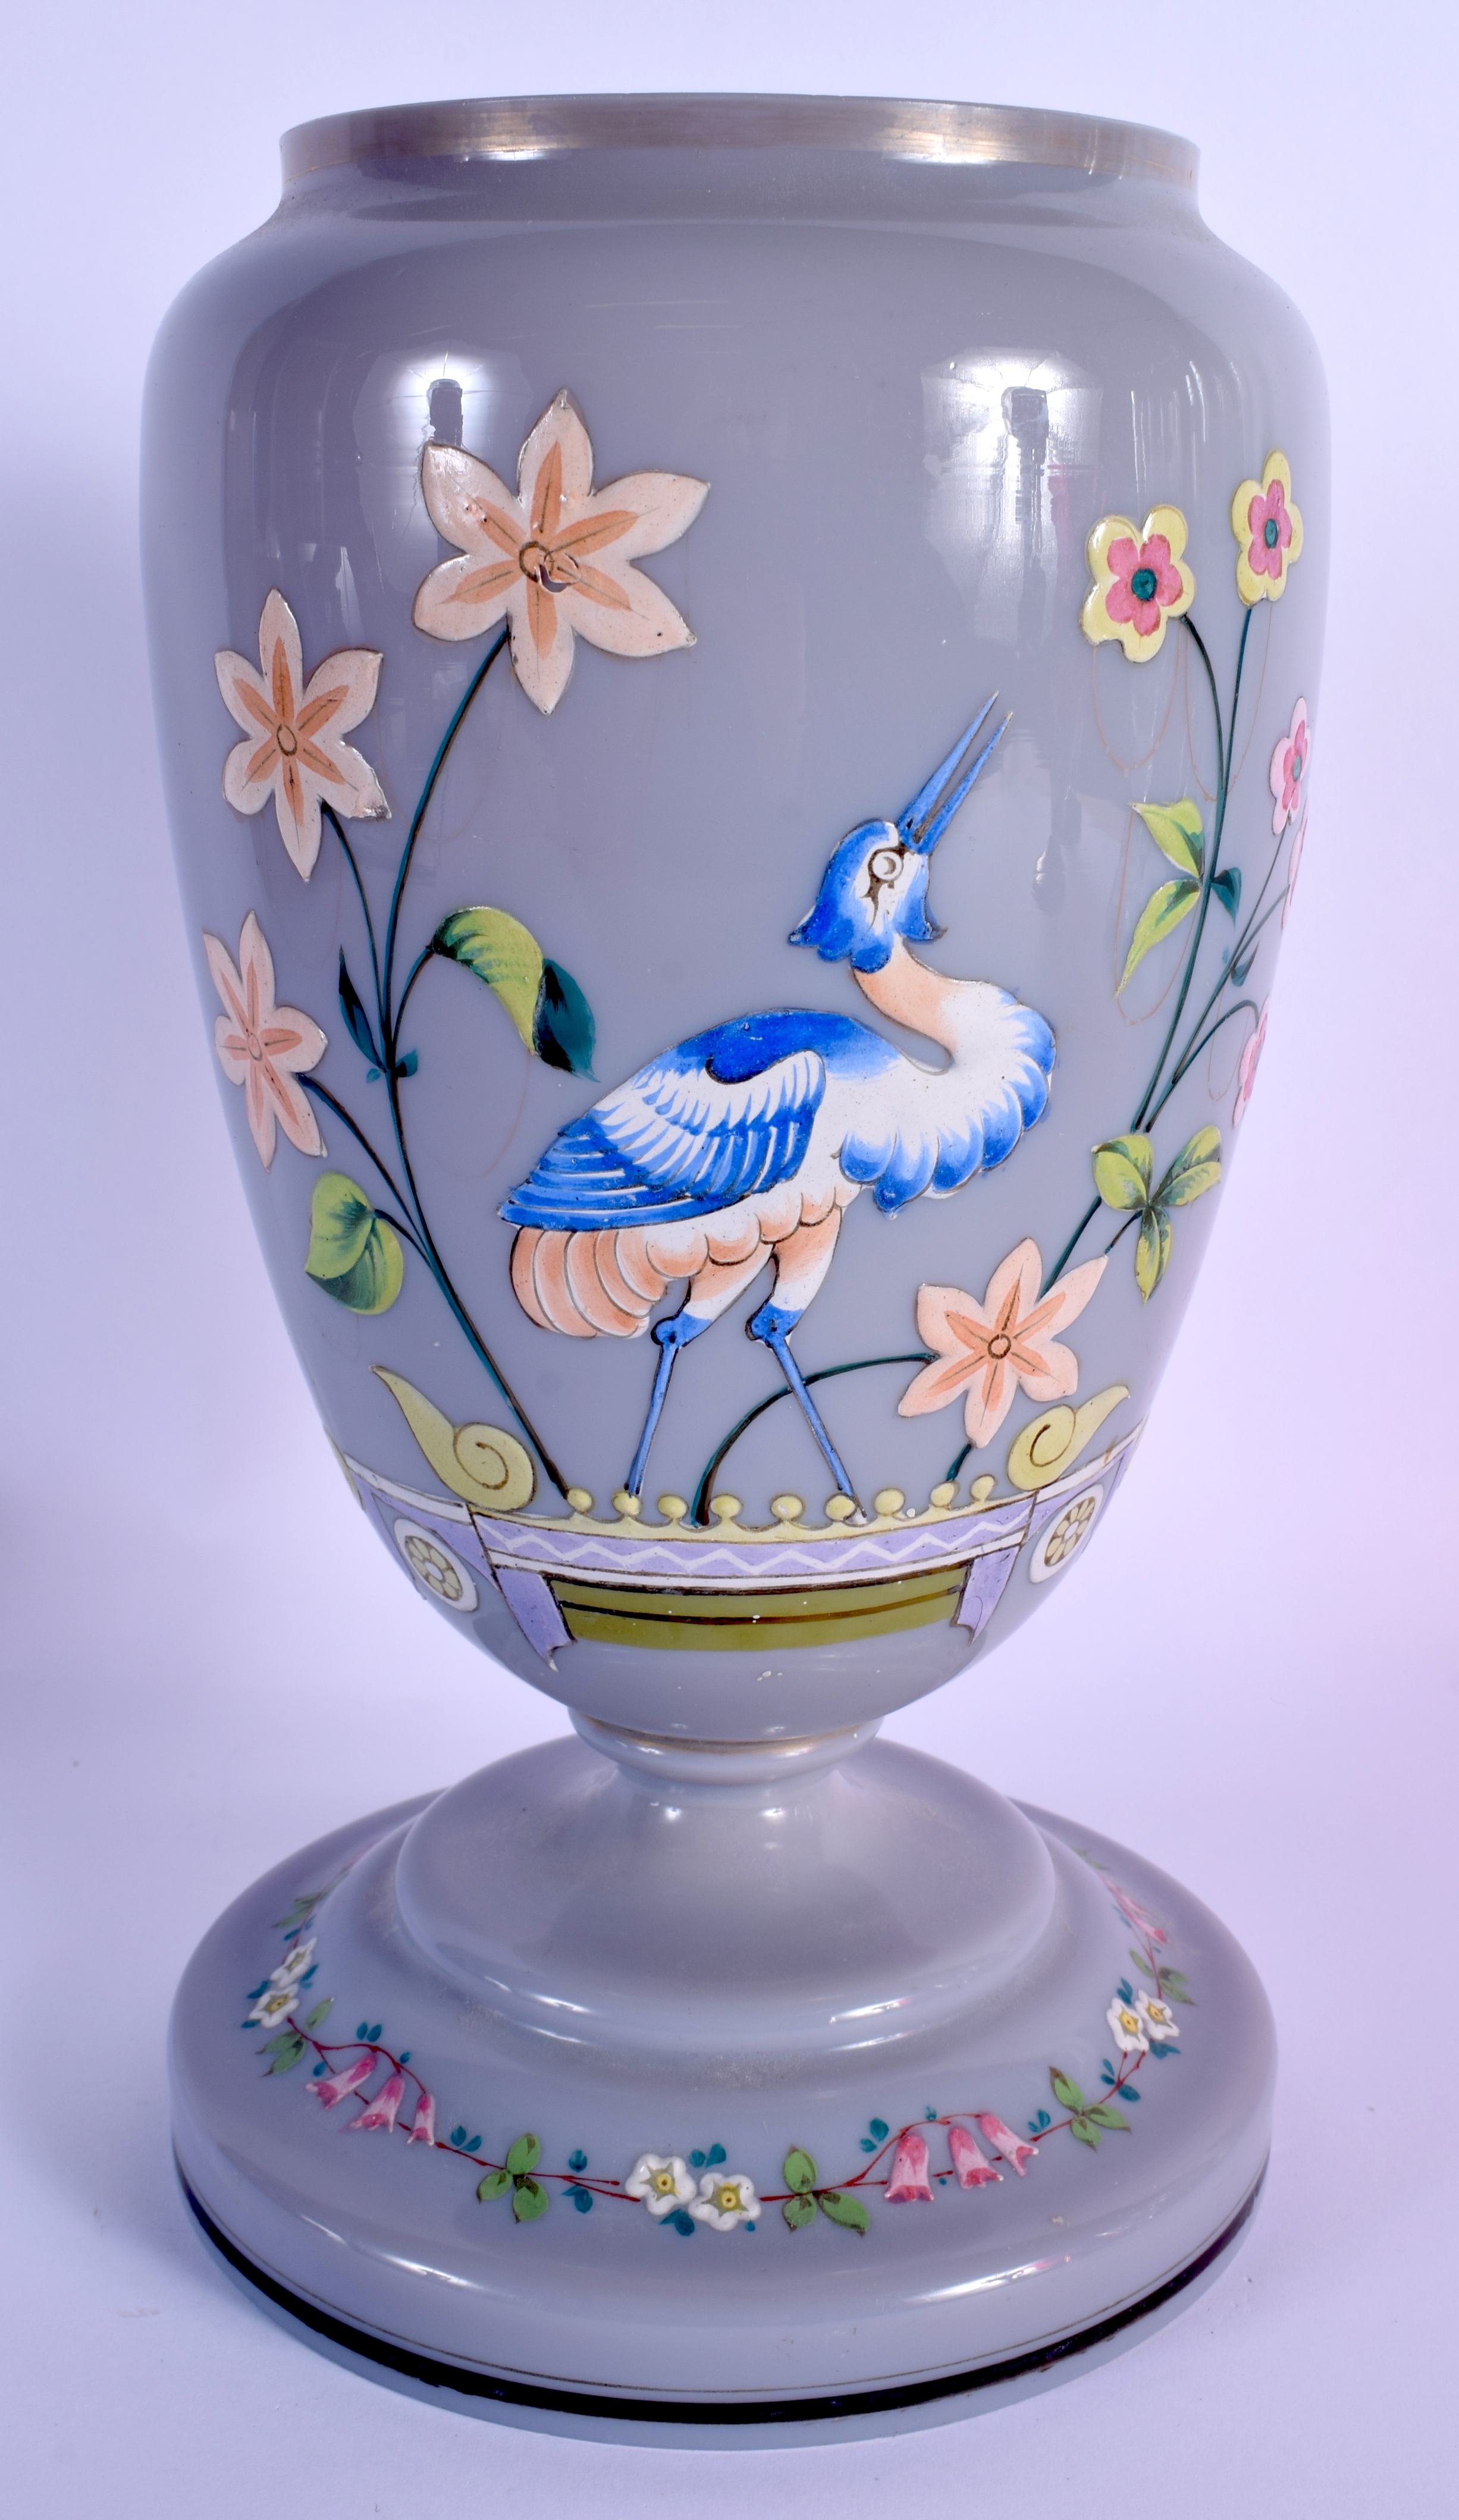 A LATE VICTORIAN/EDWARDIAN ENAMELLED GREY PURPLE GLASS OIL LAMP BASE decorated with a bird. 27 cm hi